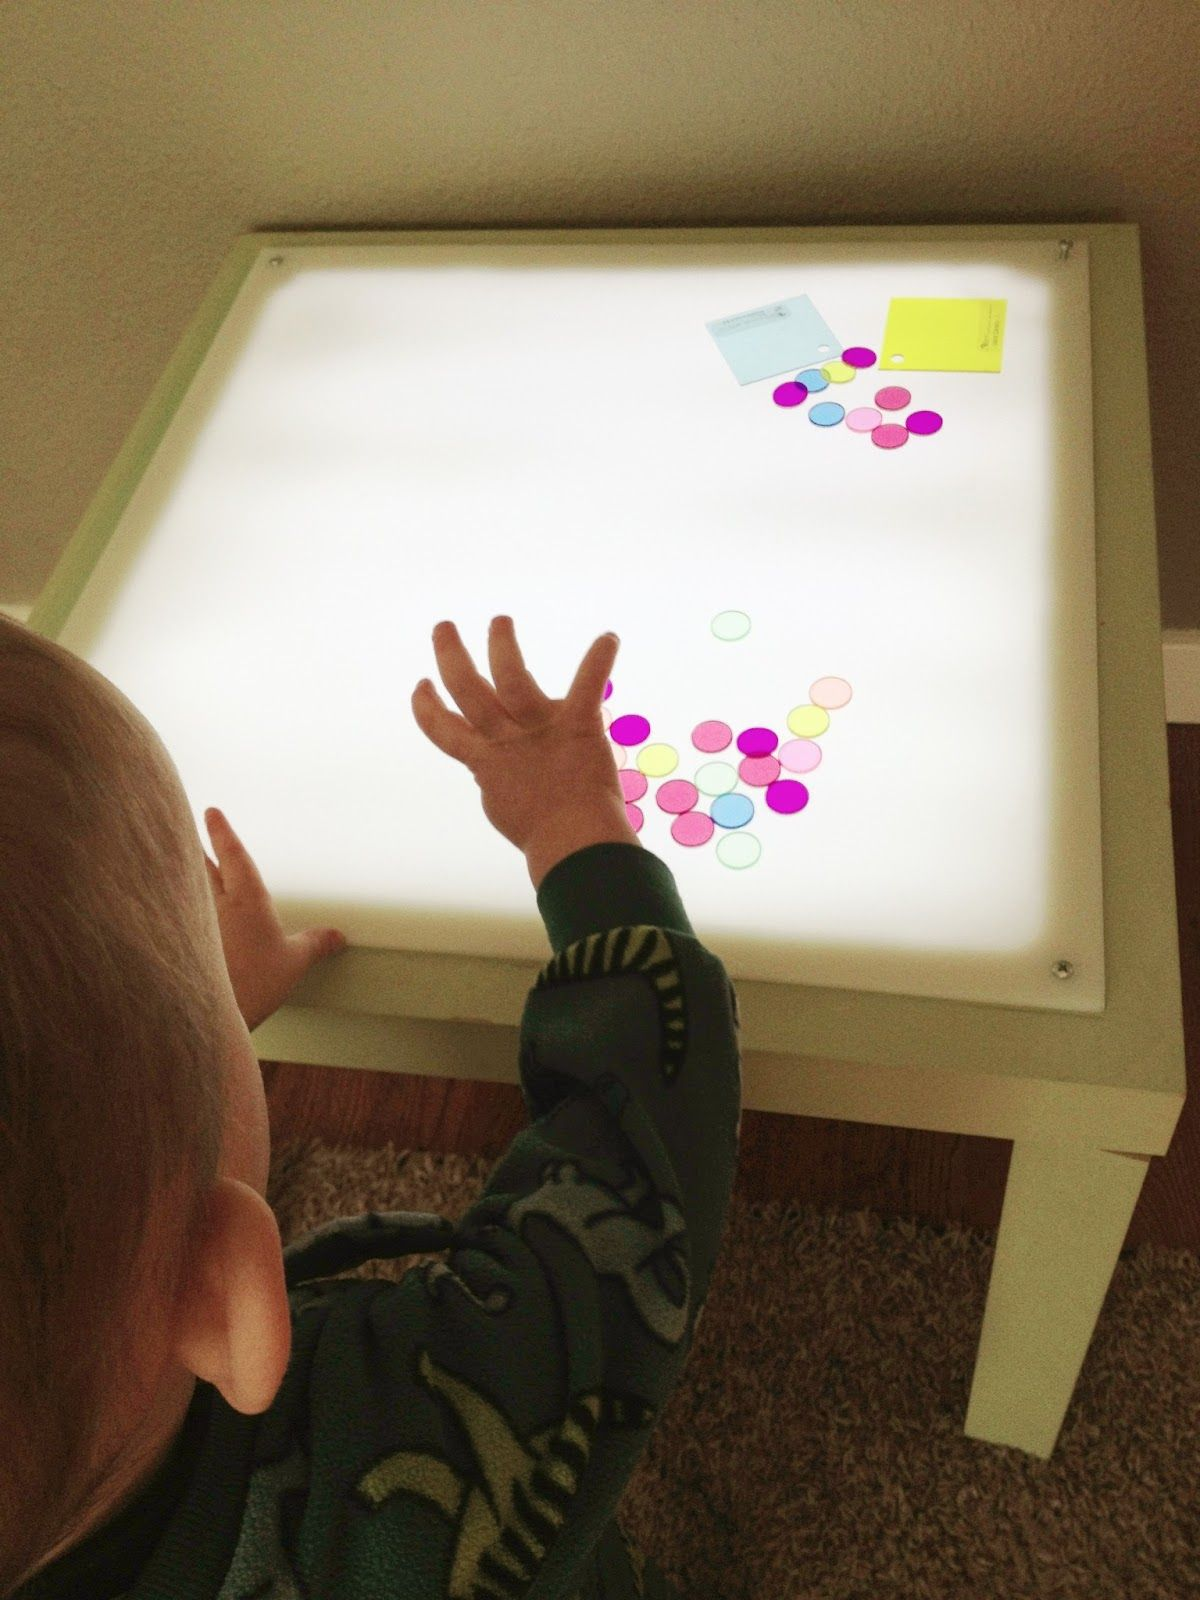 Diy Light Table Ikea Lack Hack Adventures In Crafting By